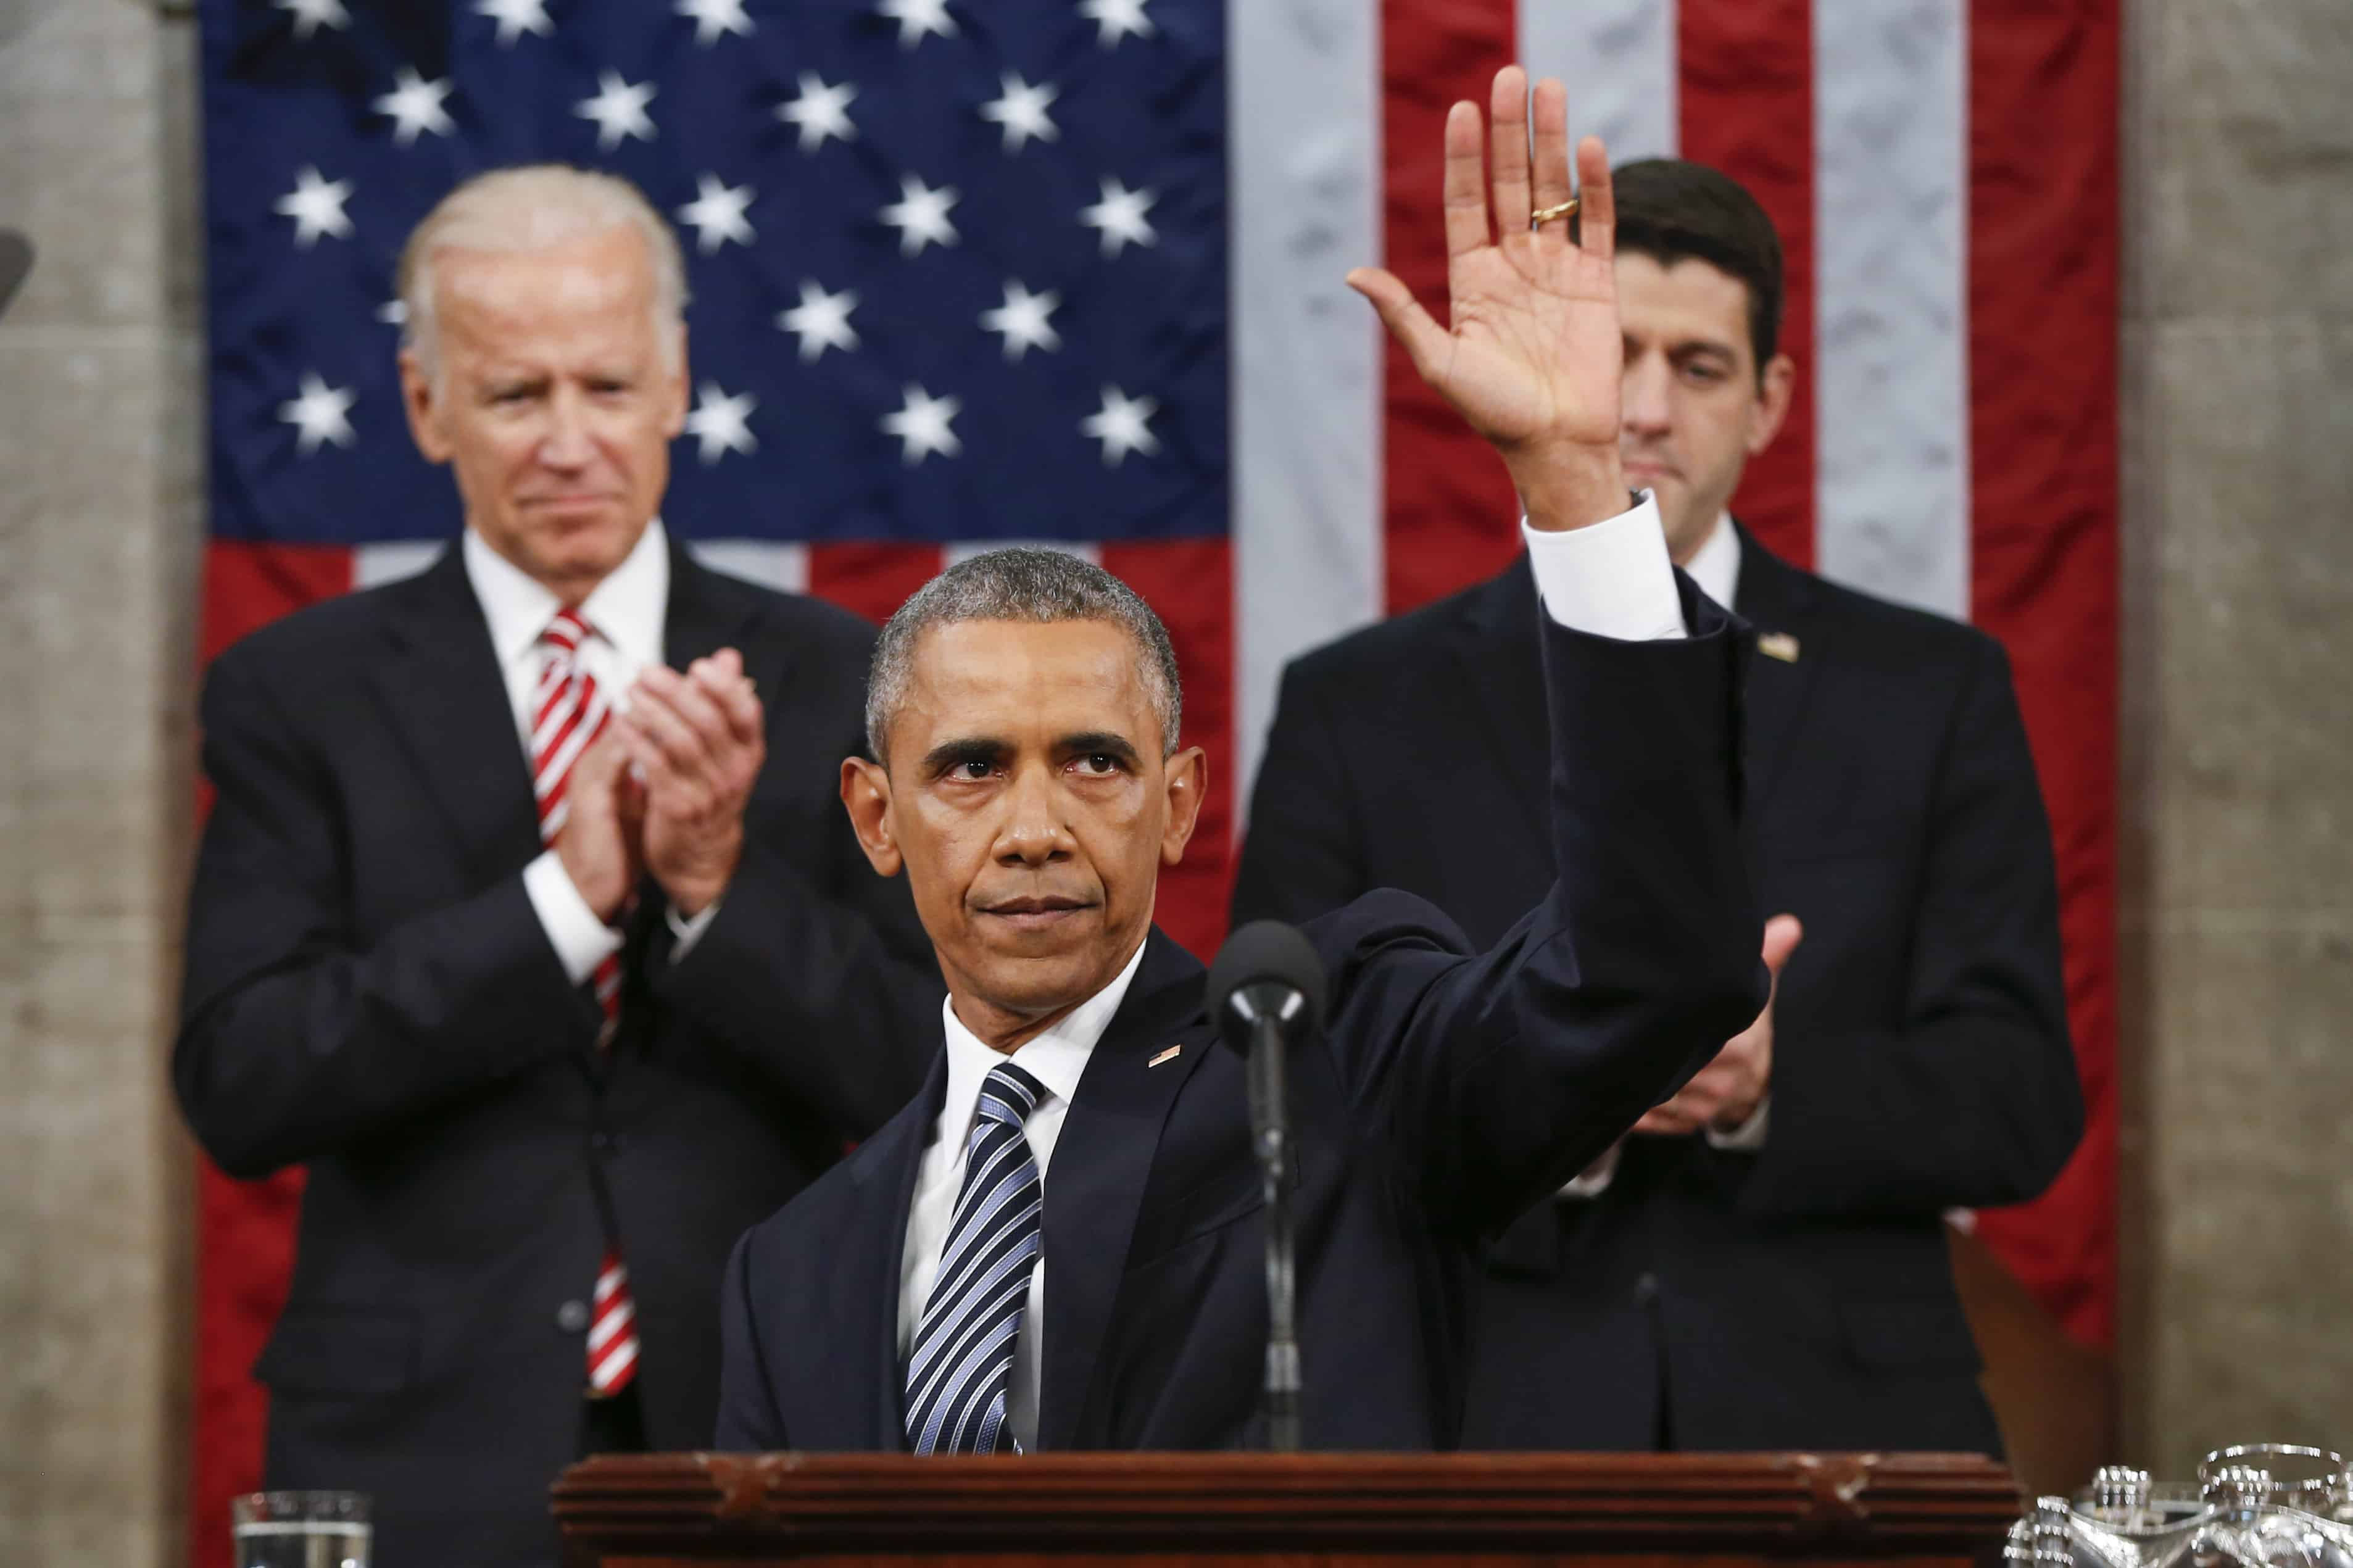 U.S. President Barack Obama waves at the conclusion of his State of the Union address